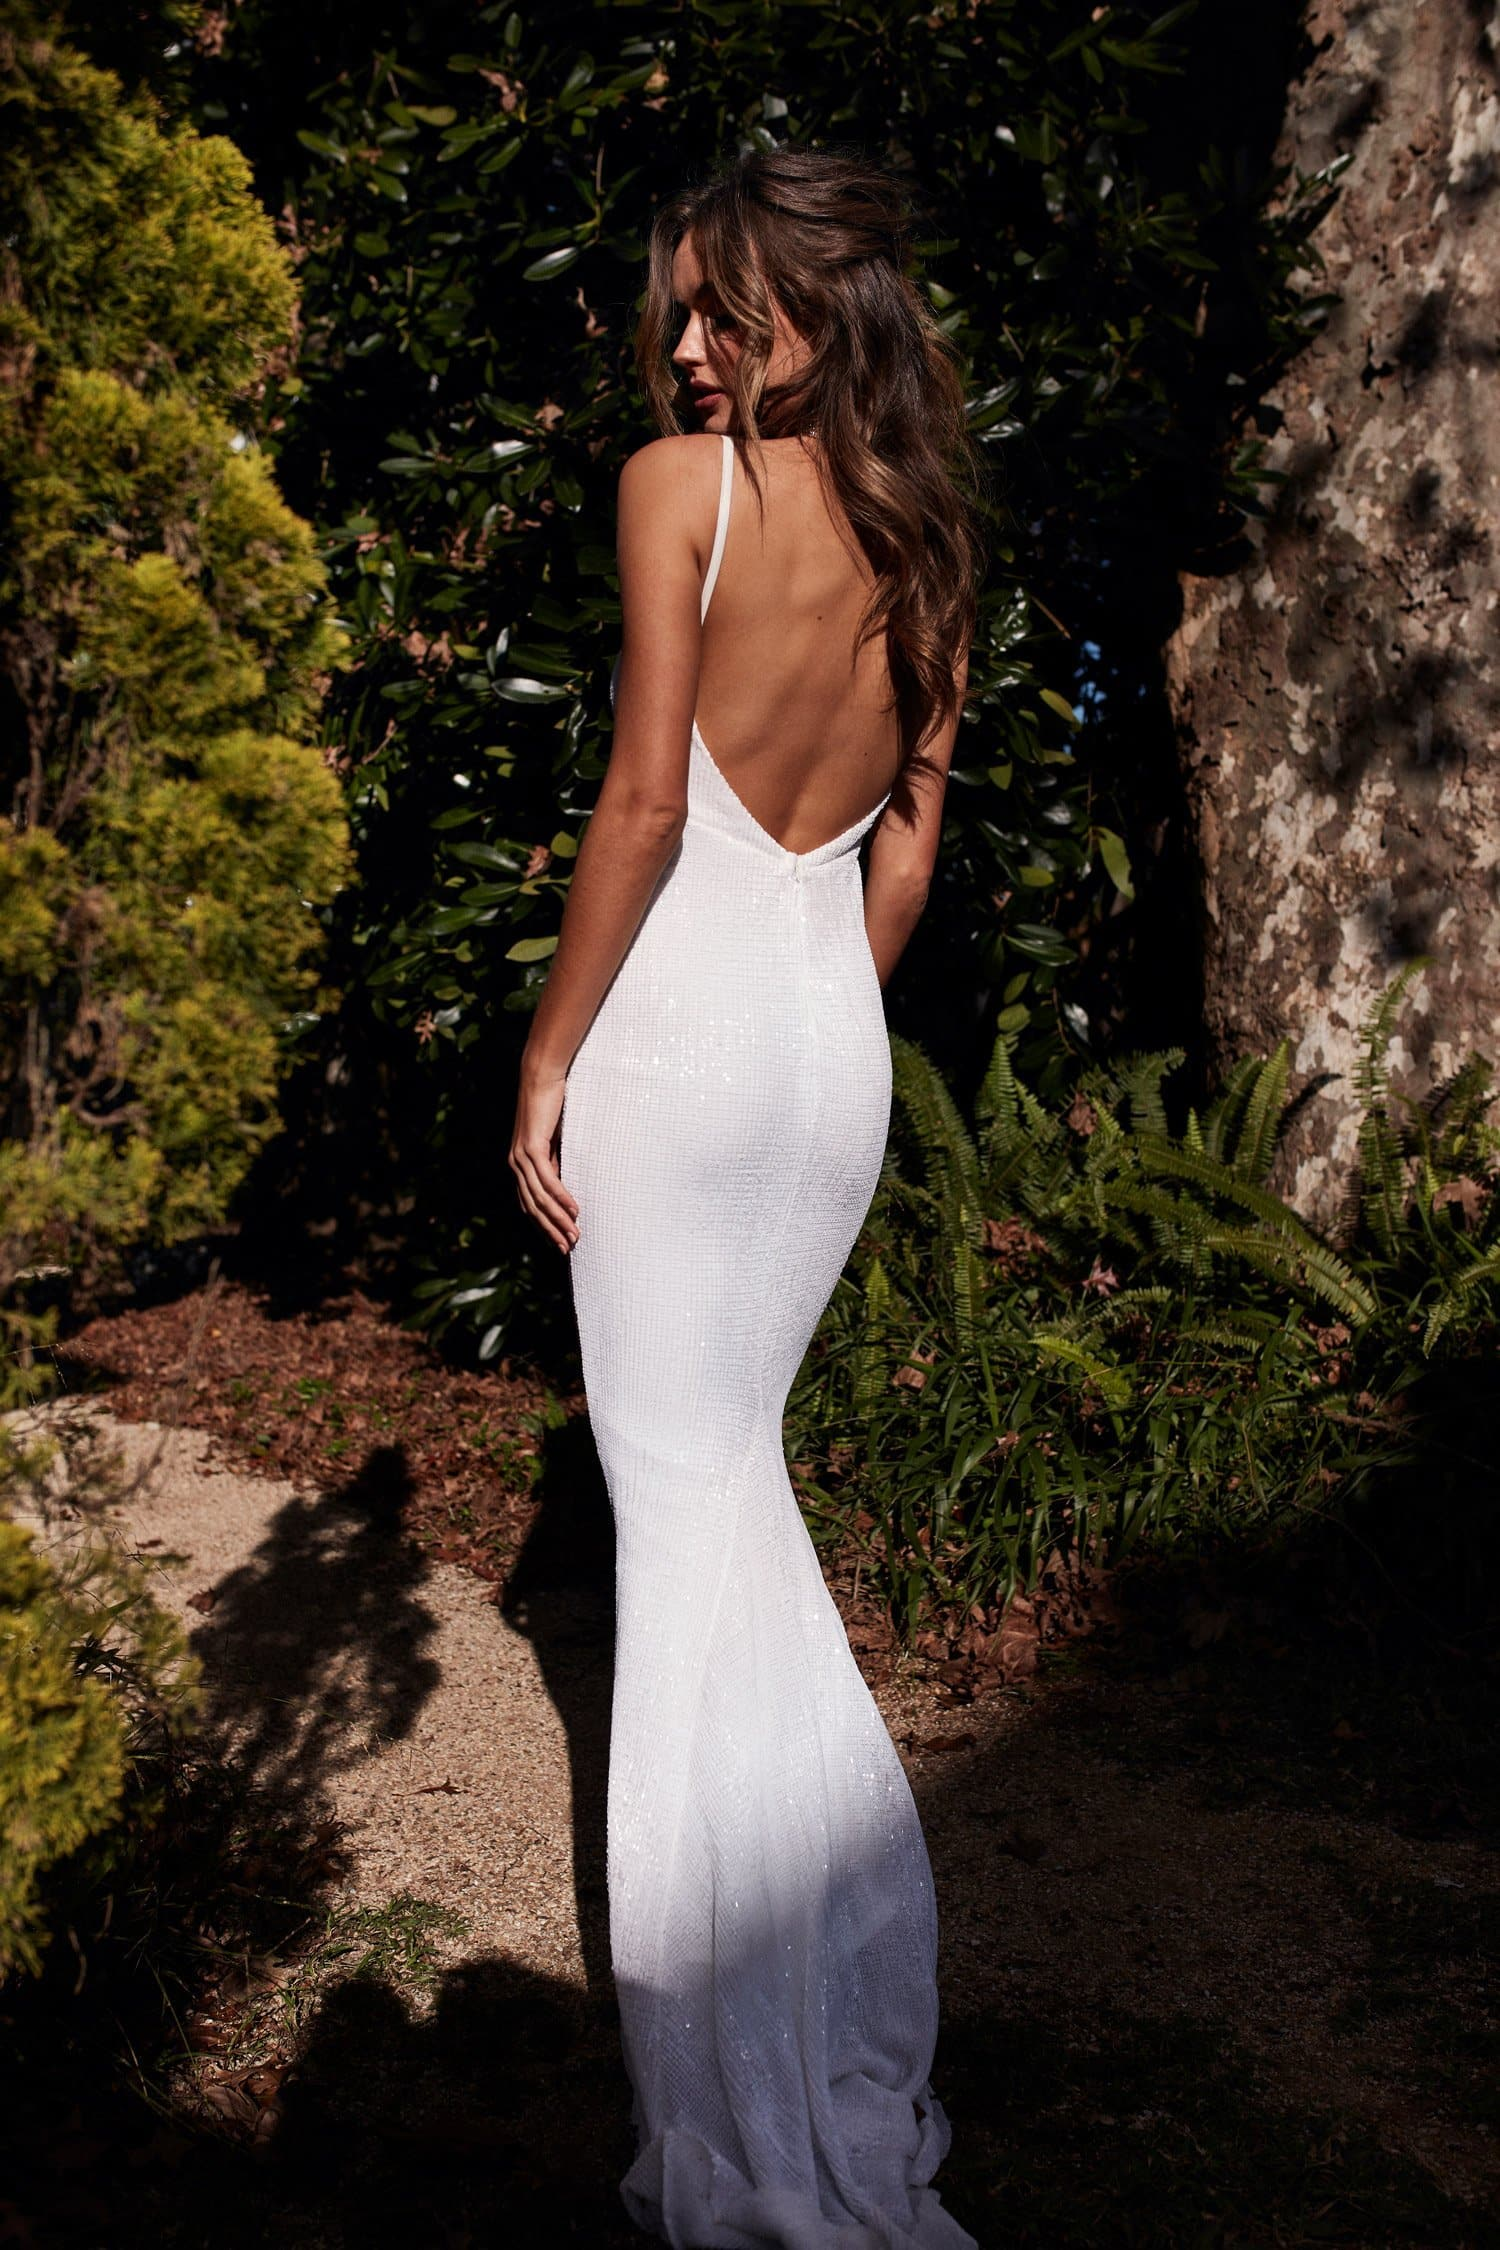 A&N Cynthia Sparkling Mermaid Gown - White